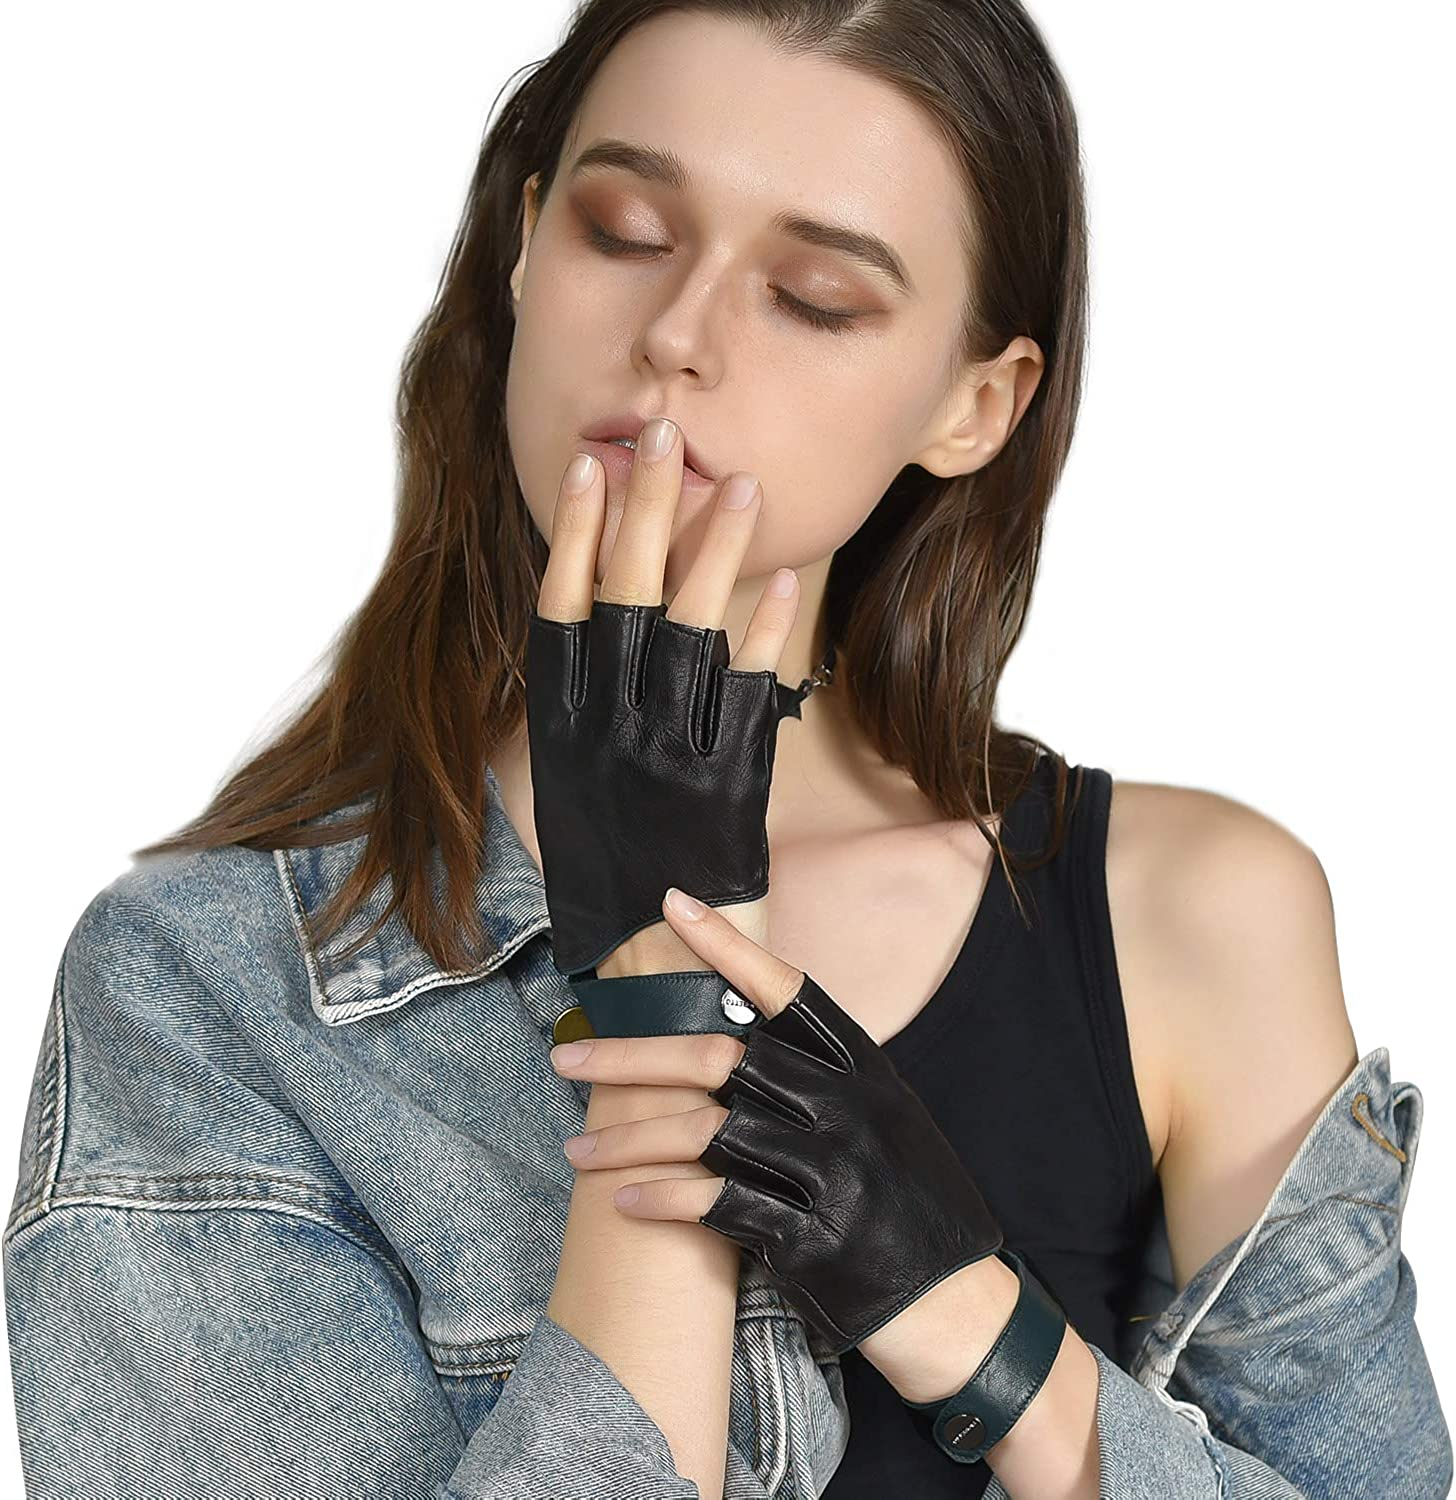 FIORETTO Womens Fingerless Leather Gloves Half Finger Driving Gloves with wristband Motorcycle